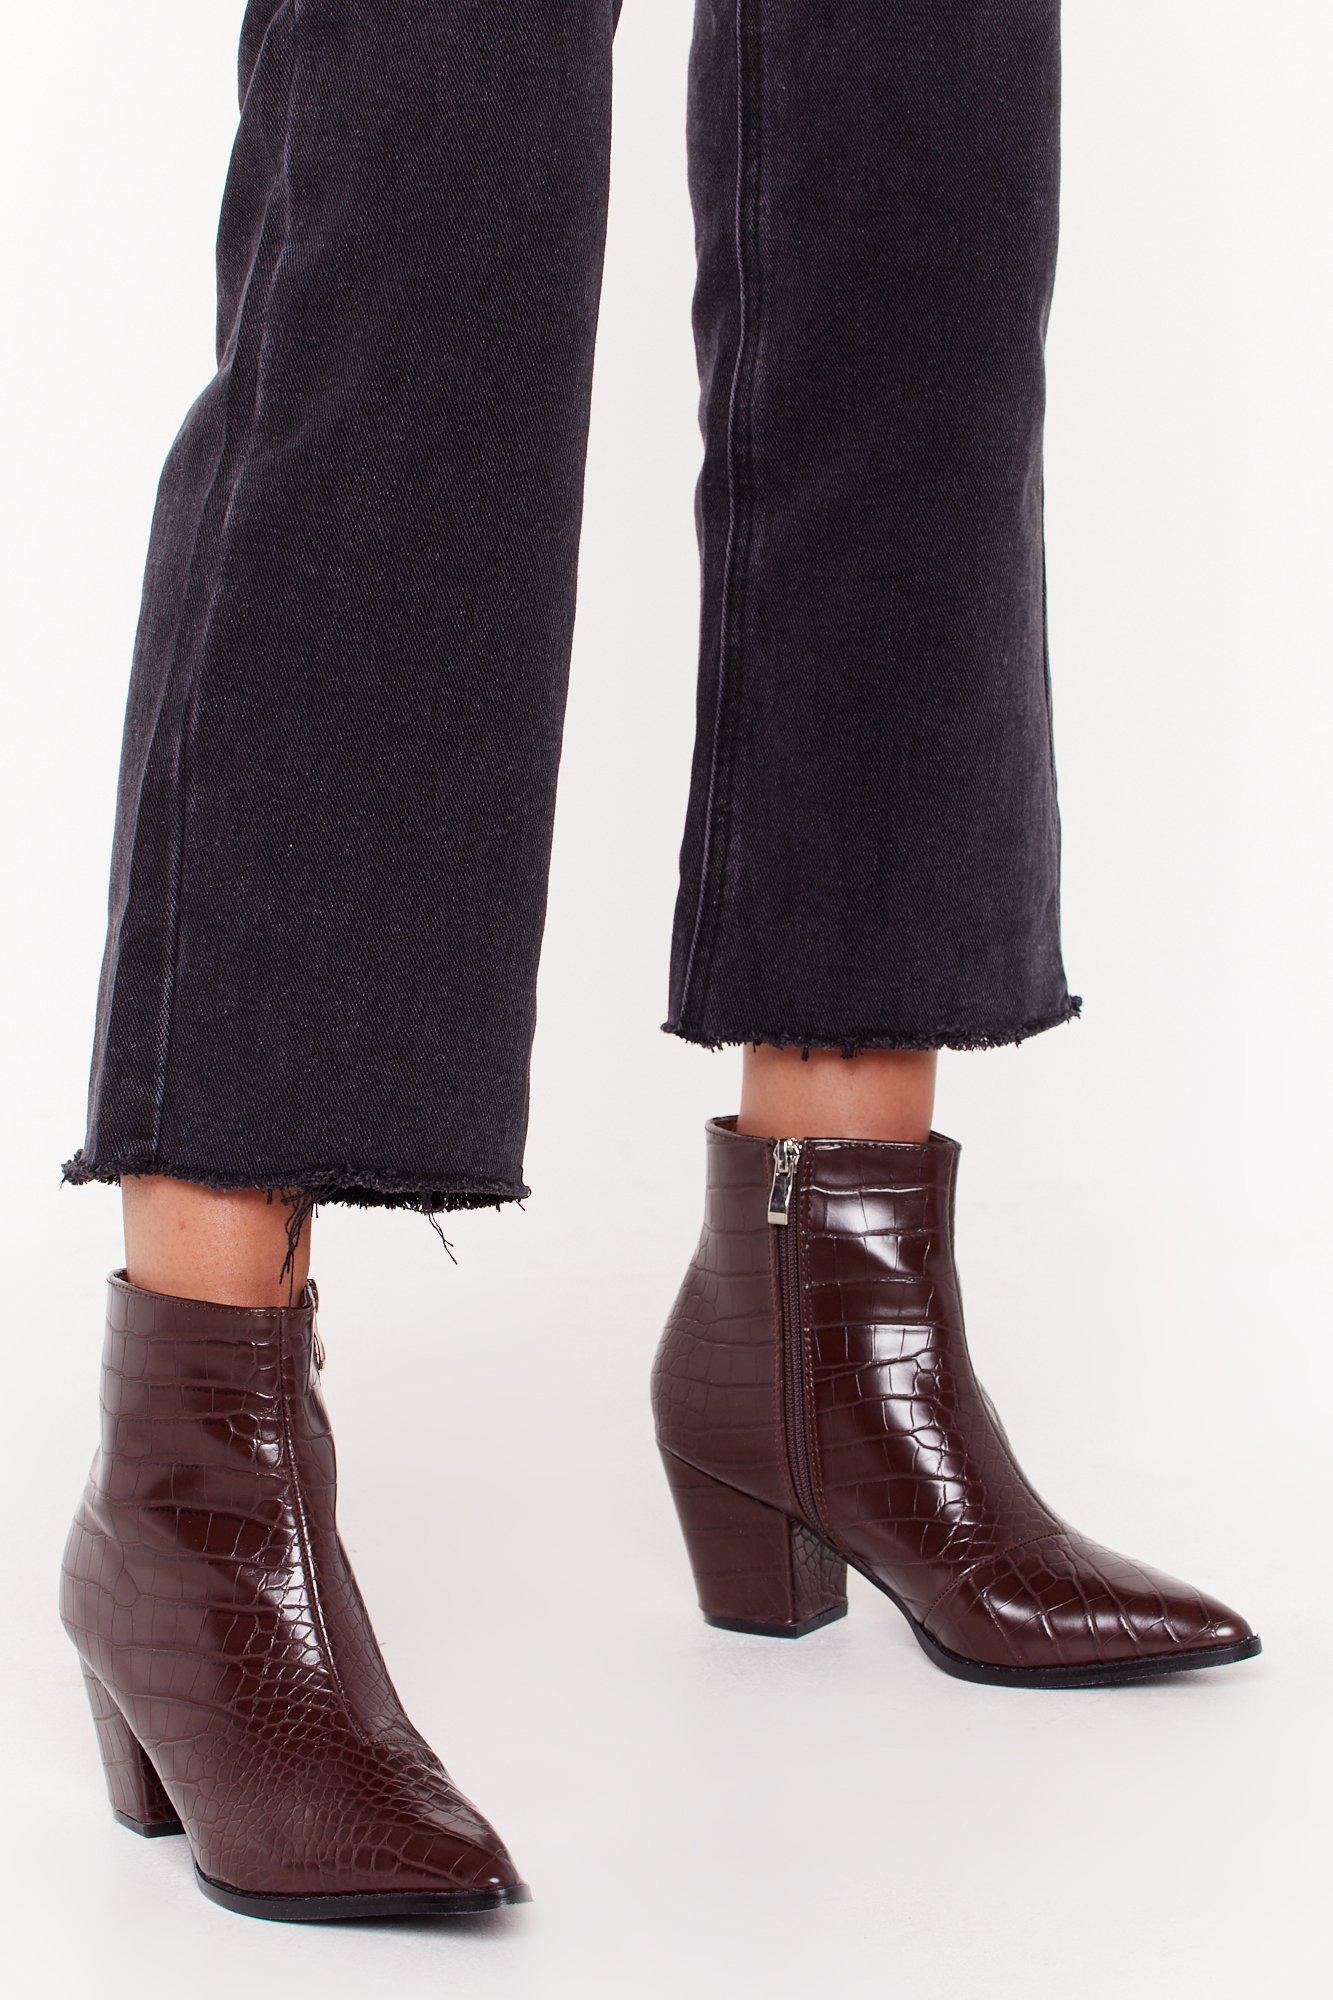 Brown leather XL high heel boots